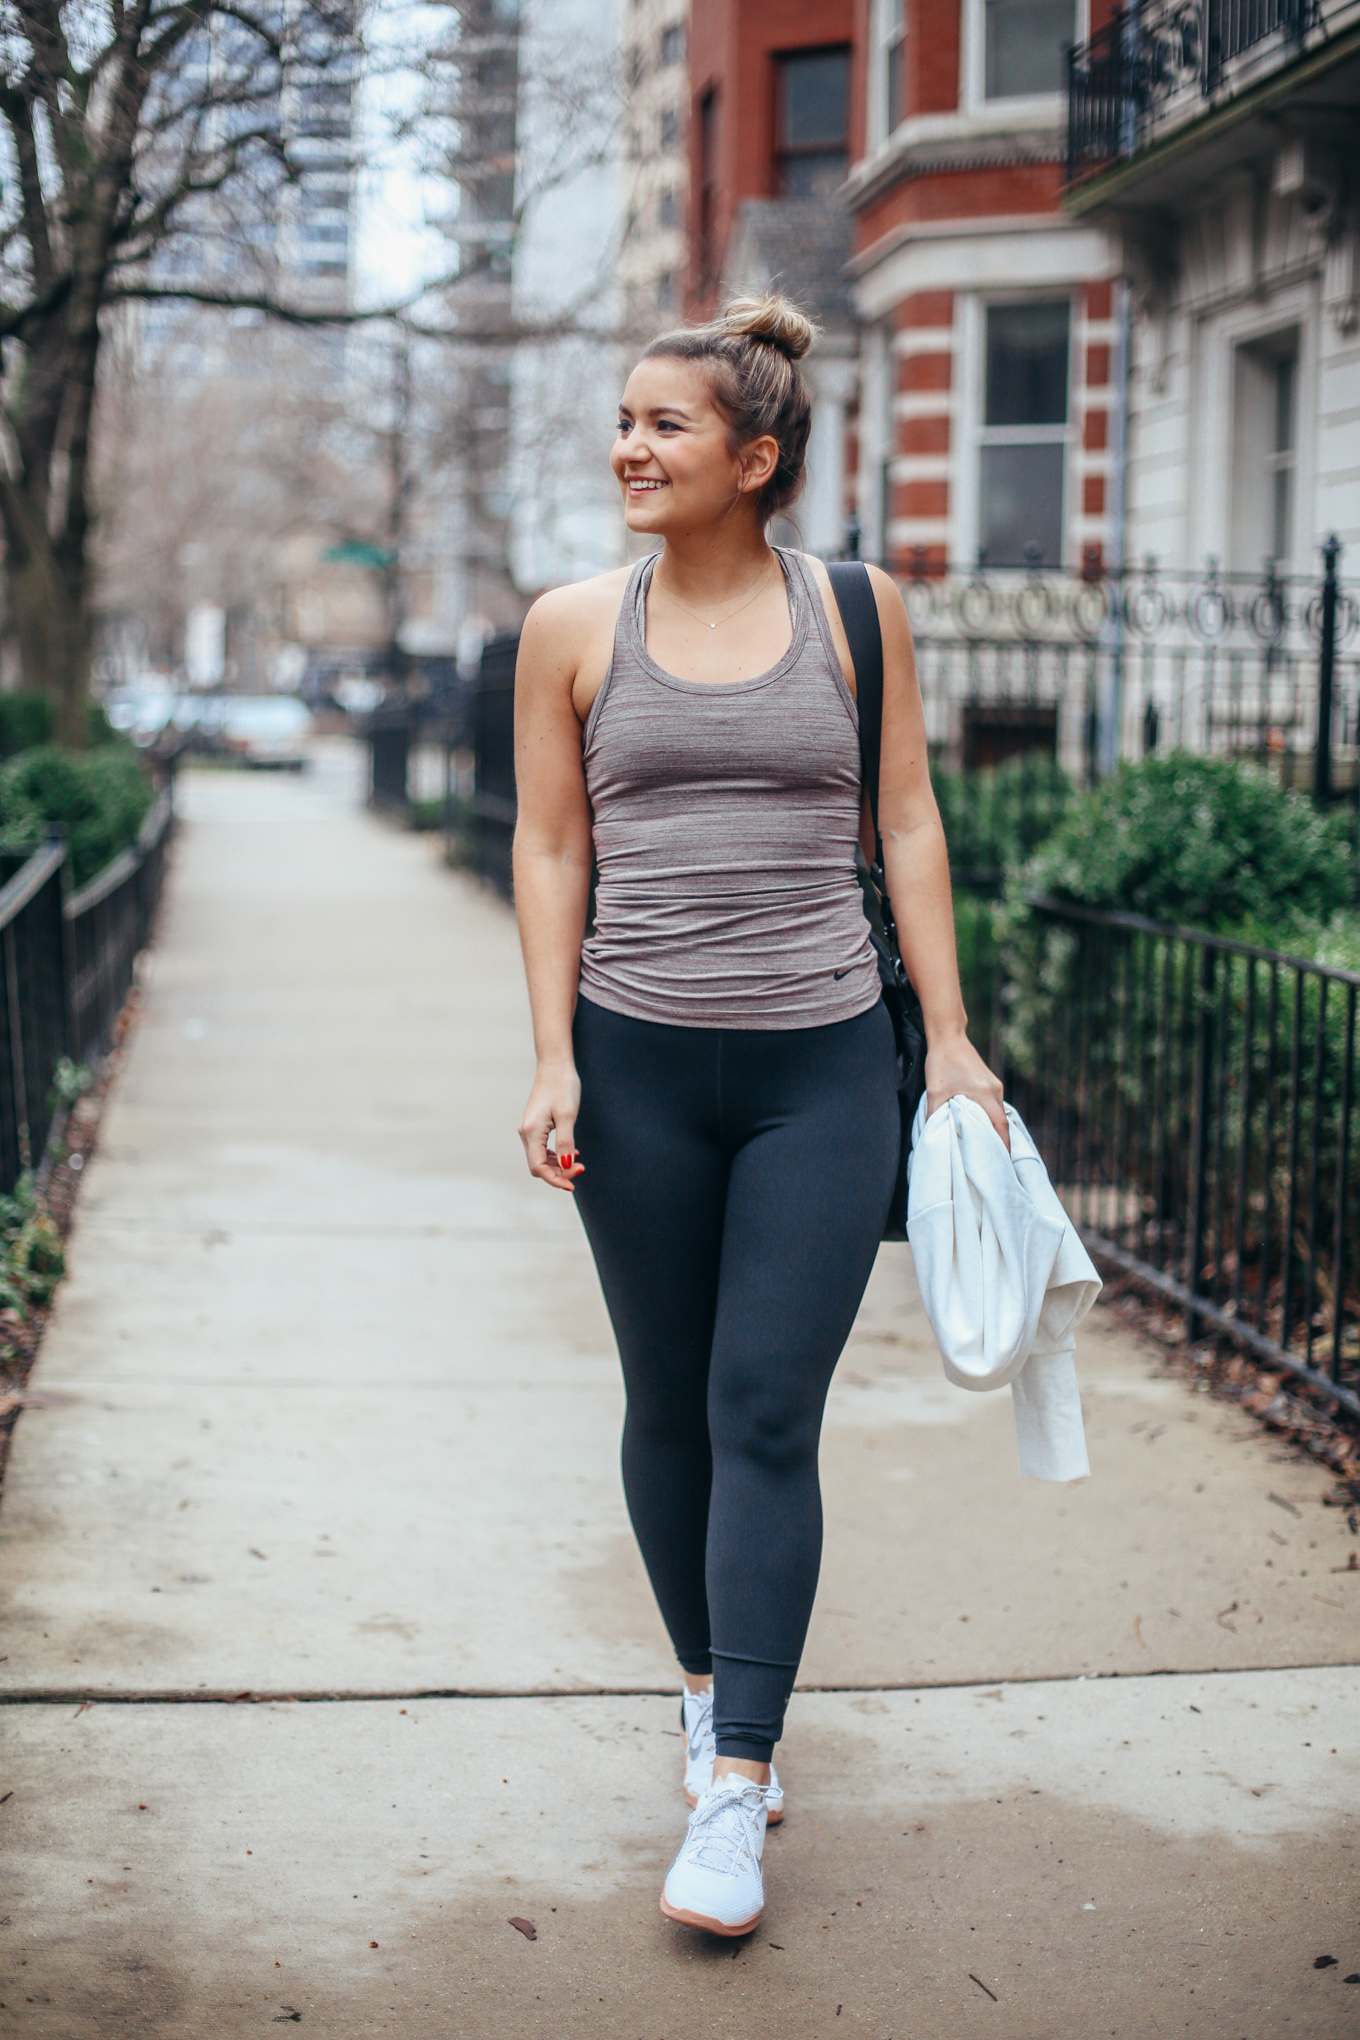 How to get cash back on Nike Yoga (and other fitness brands!)